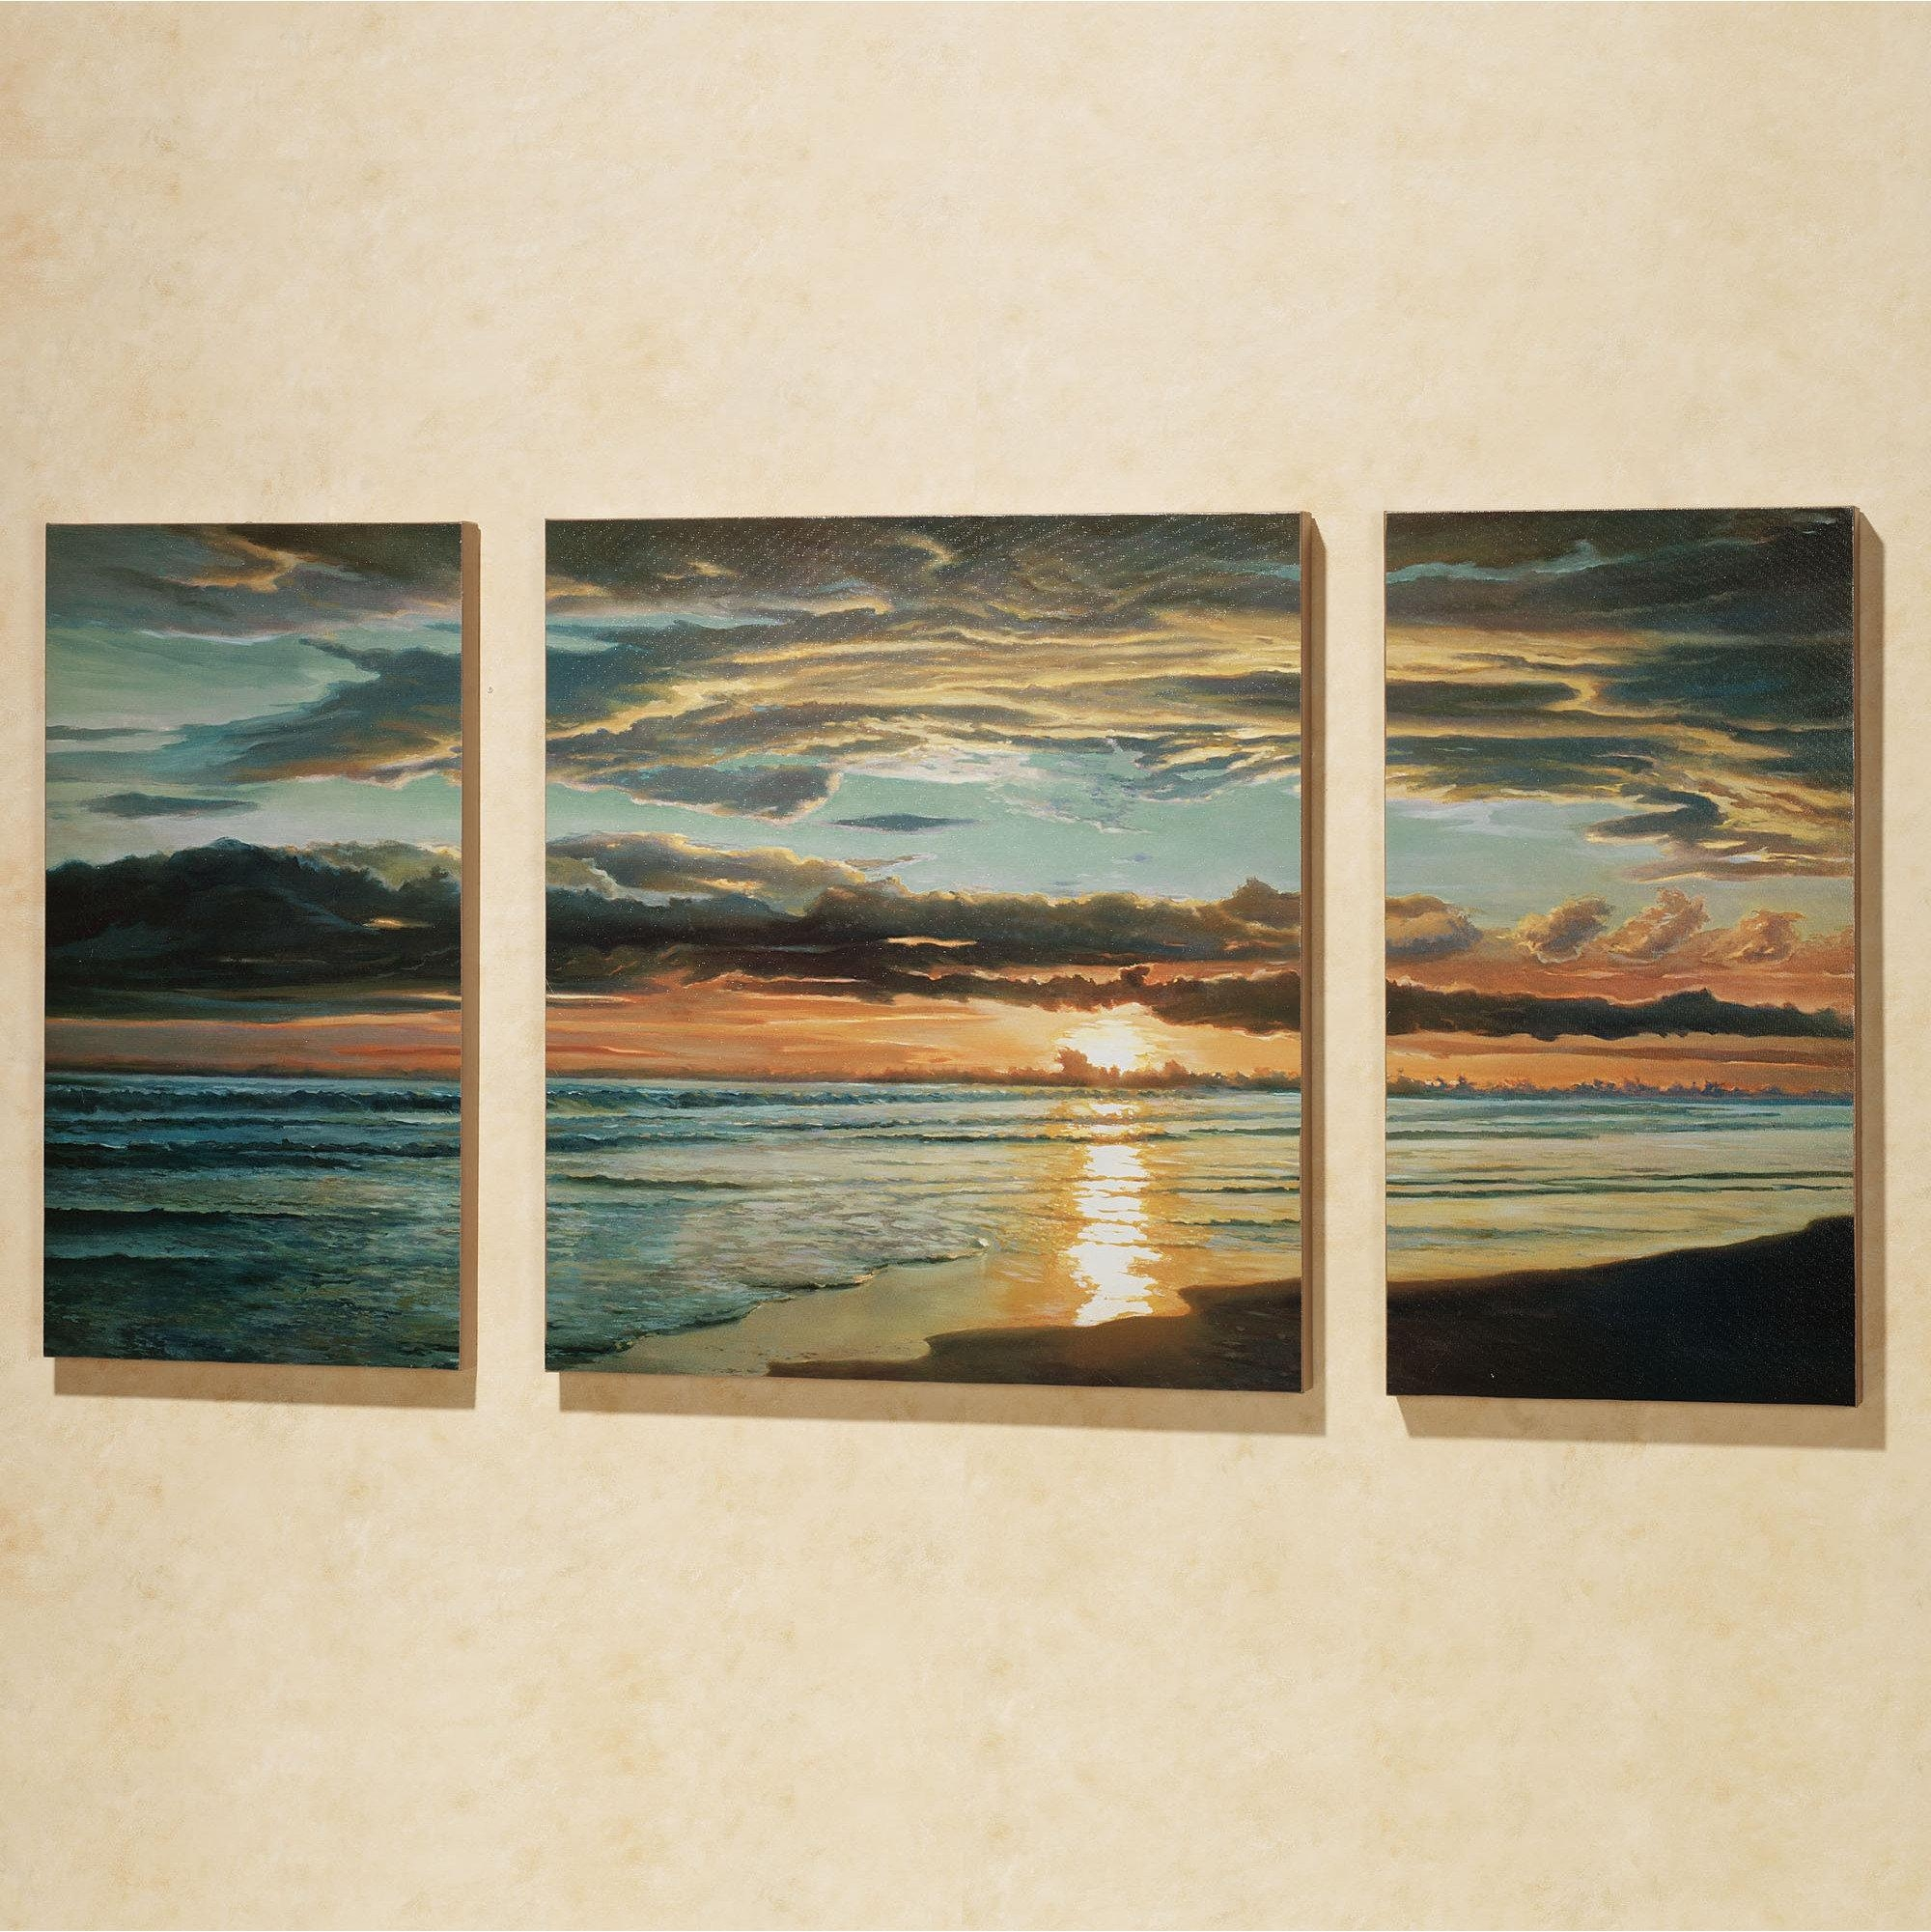 Wall Art Designs: Modern Designing Triptych Wall Art Canvas For Inside Triptych Art For Sale (View 7 of 20)